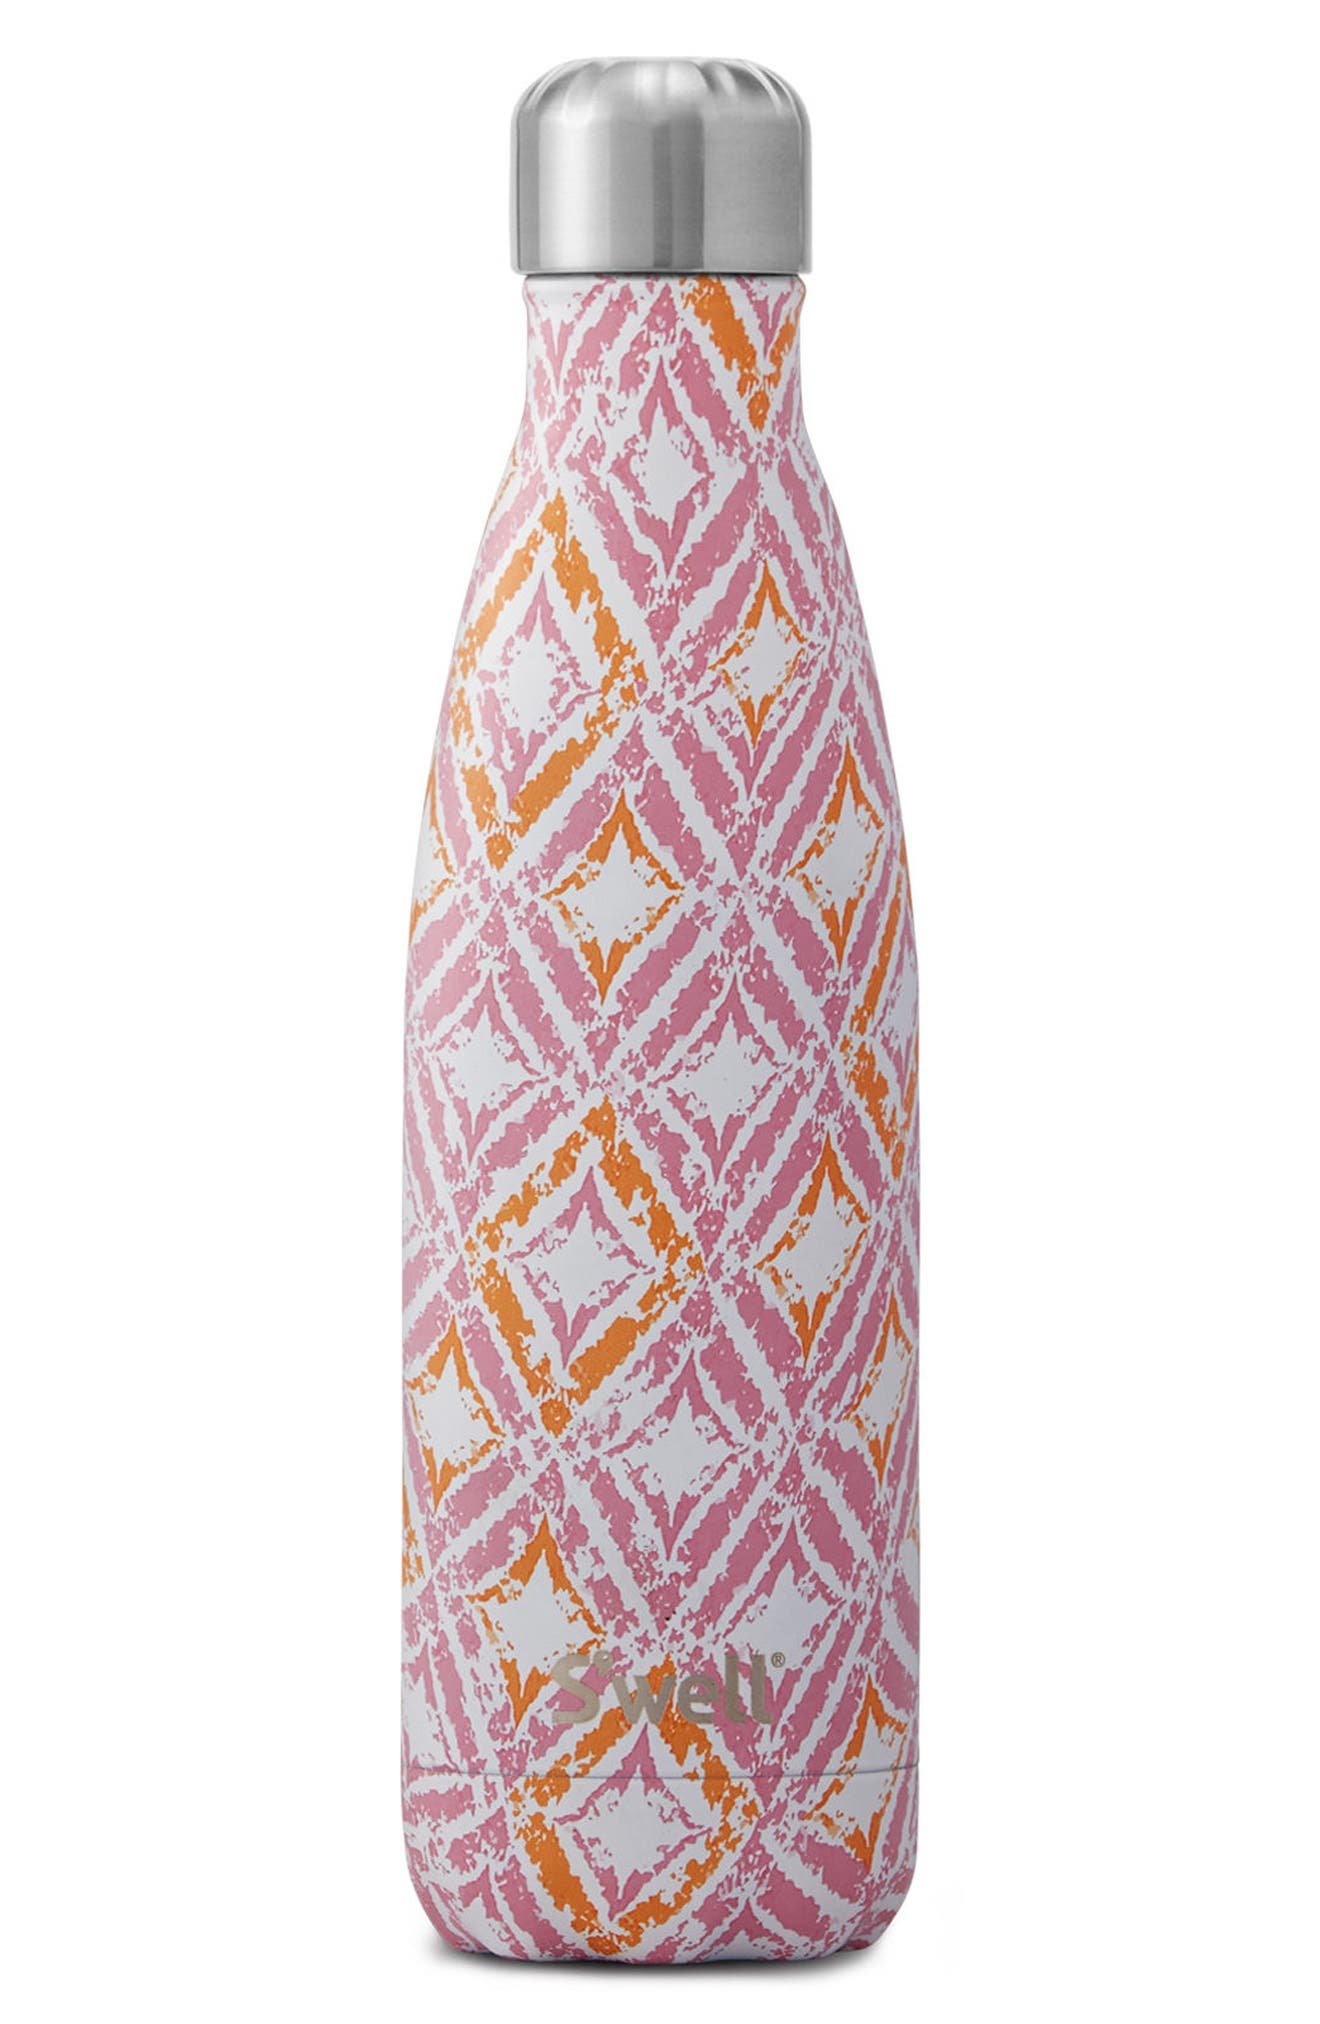 Odisha Insulated Stainless Steel Water Bottle,                         Main,                         color, Odisha